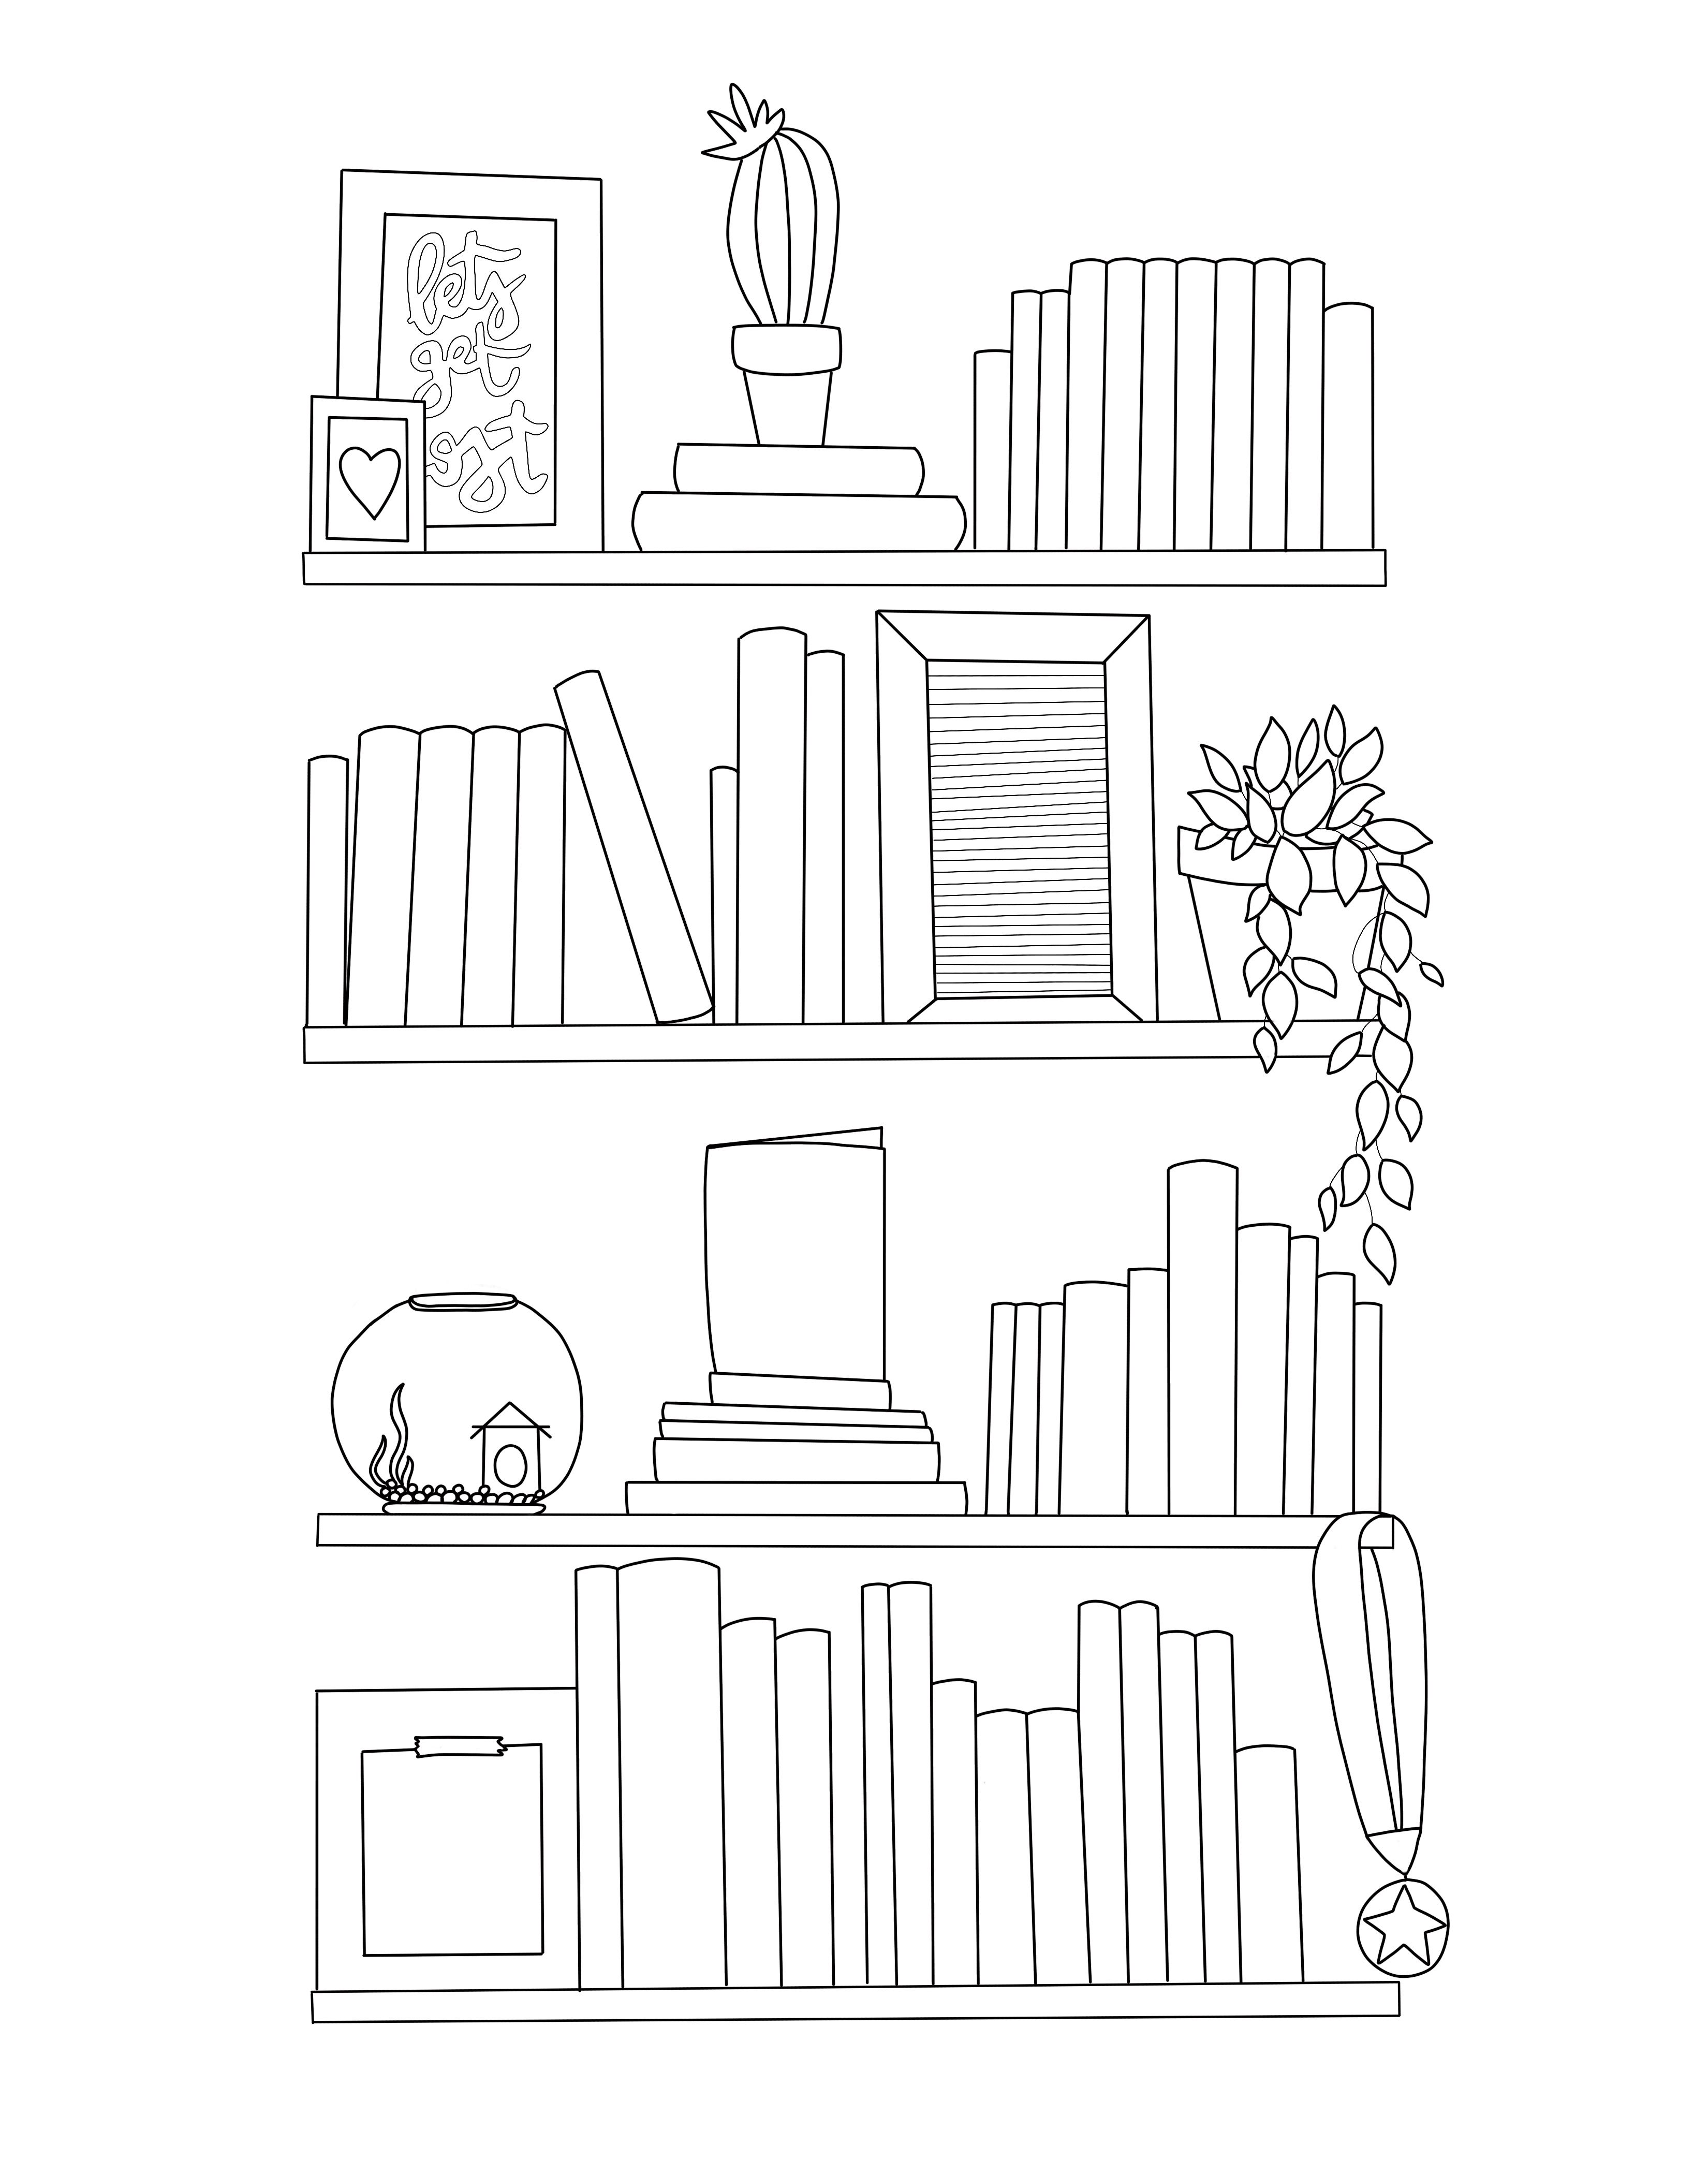 Free Printable Book Log Coloring Page Bullet Journal Ideas Pages Bullet Journal Books Book Log